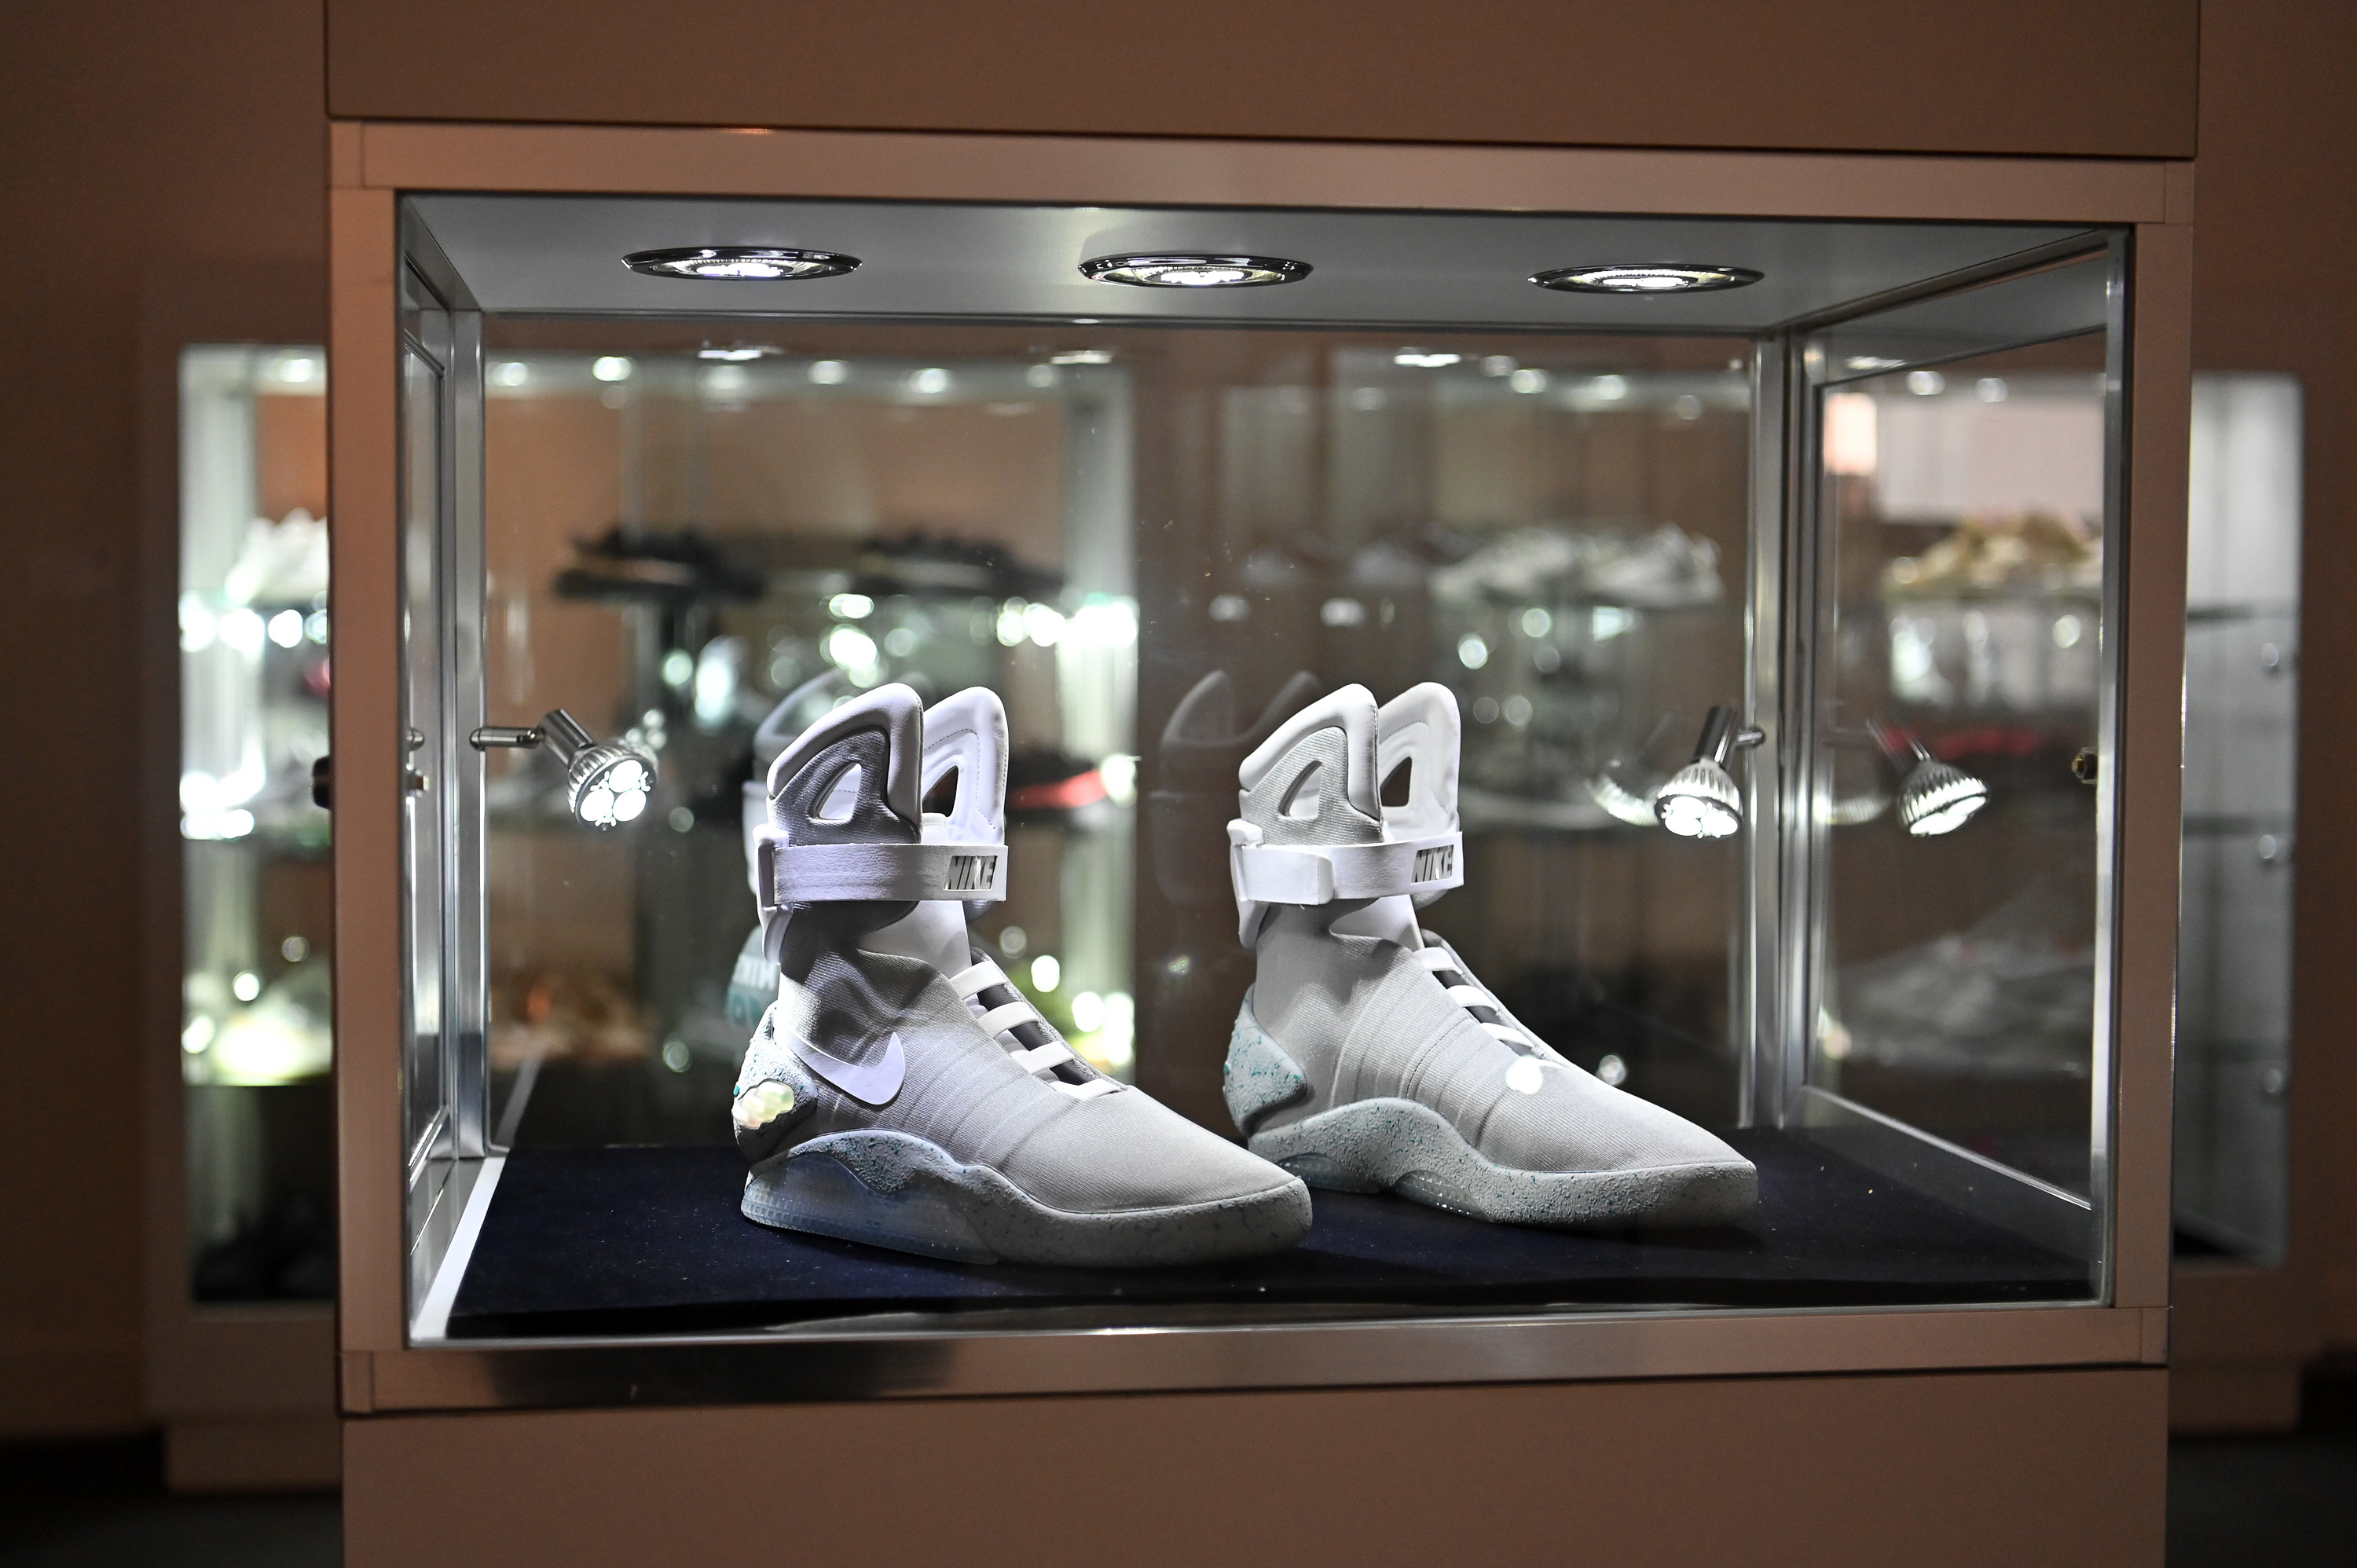 A pair of sneakers inside a lighted glass case.